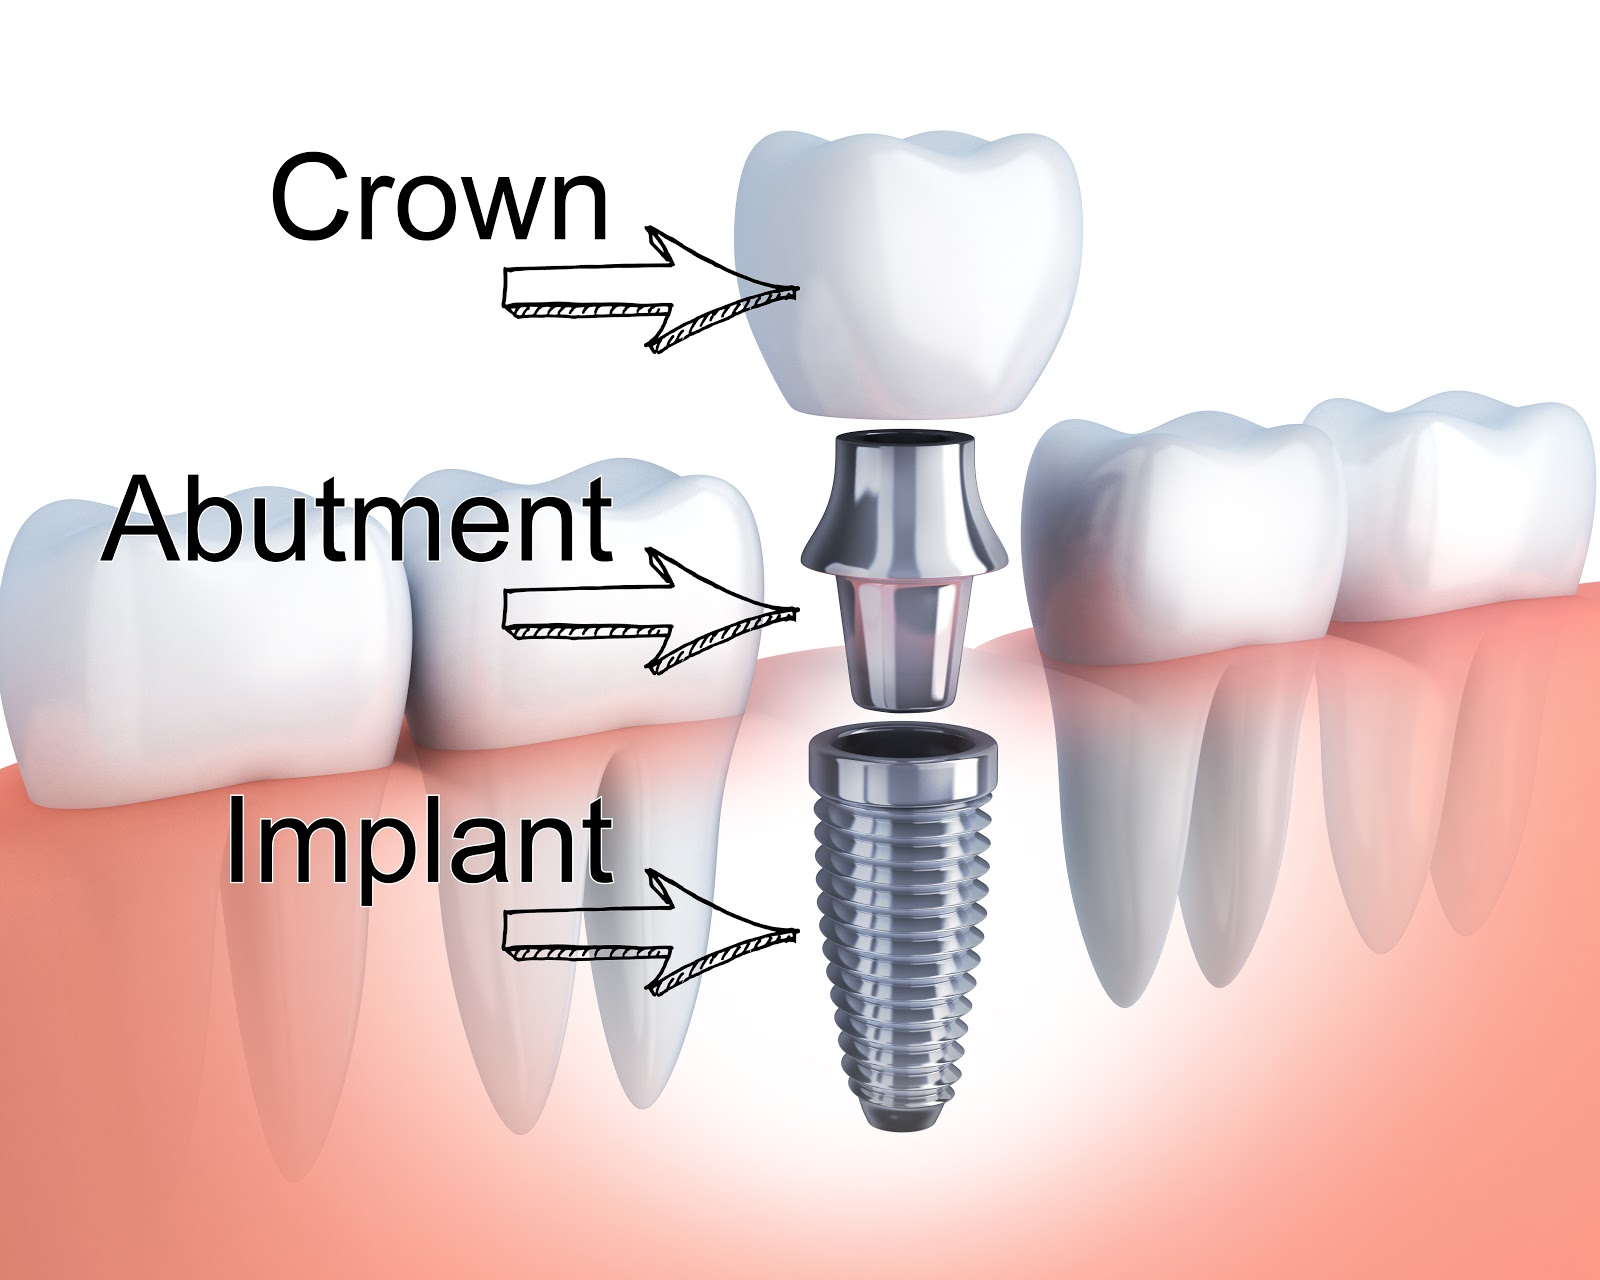 Anatomy of a single tooth dental implant: implant, abutment, and crown